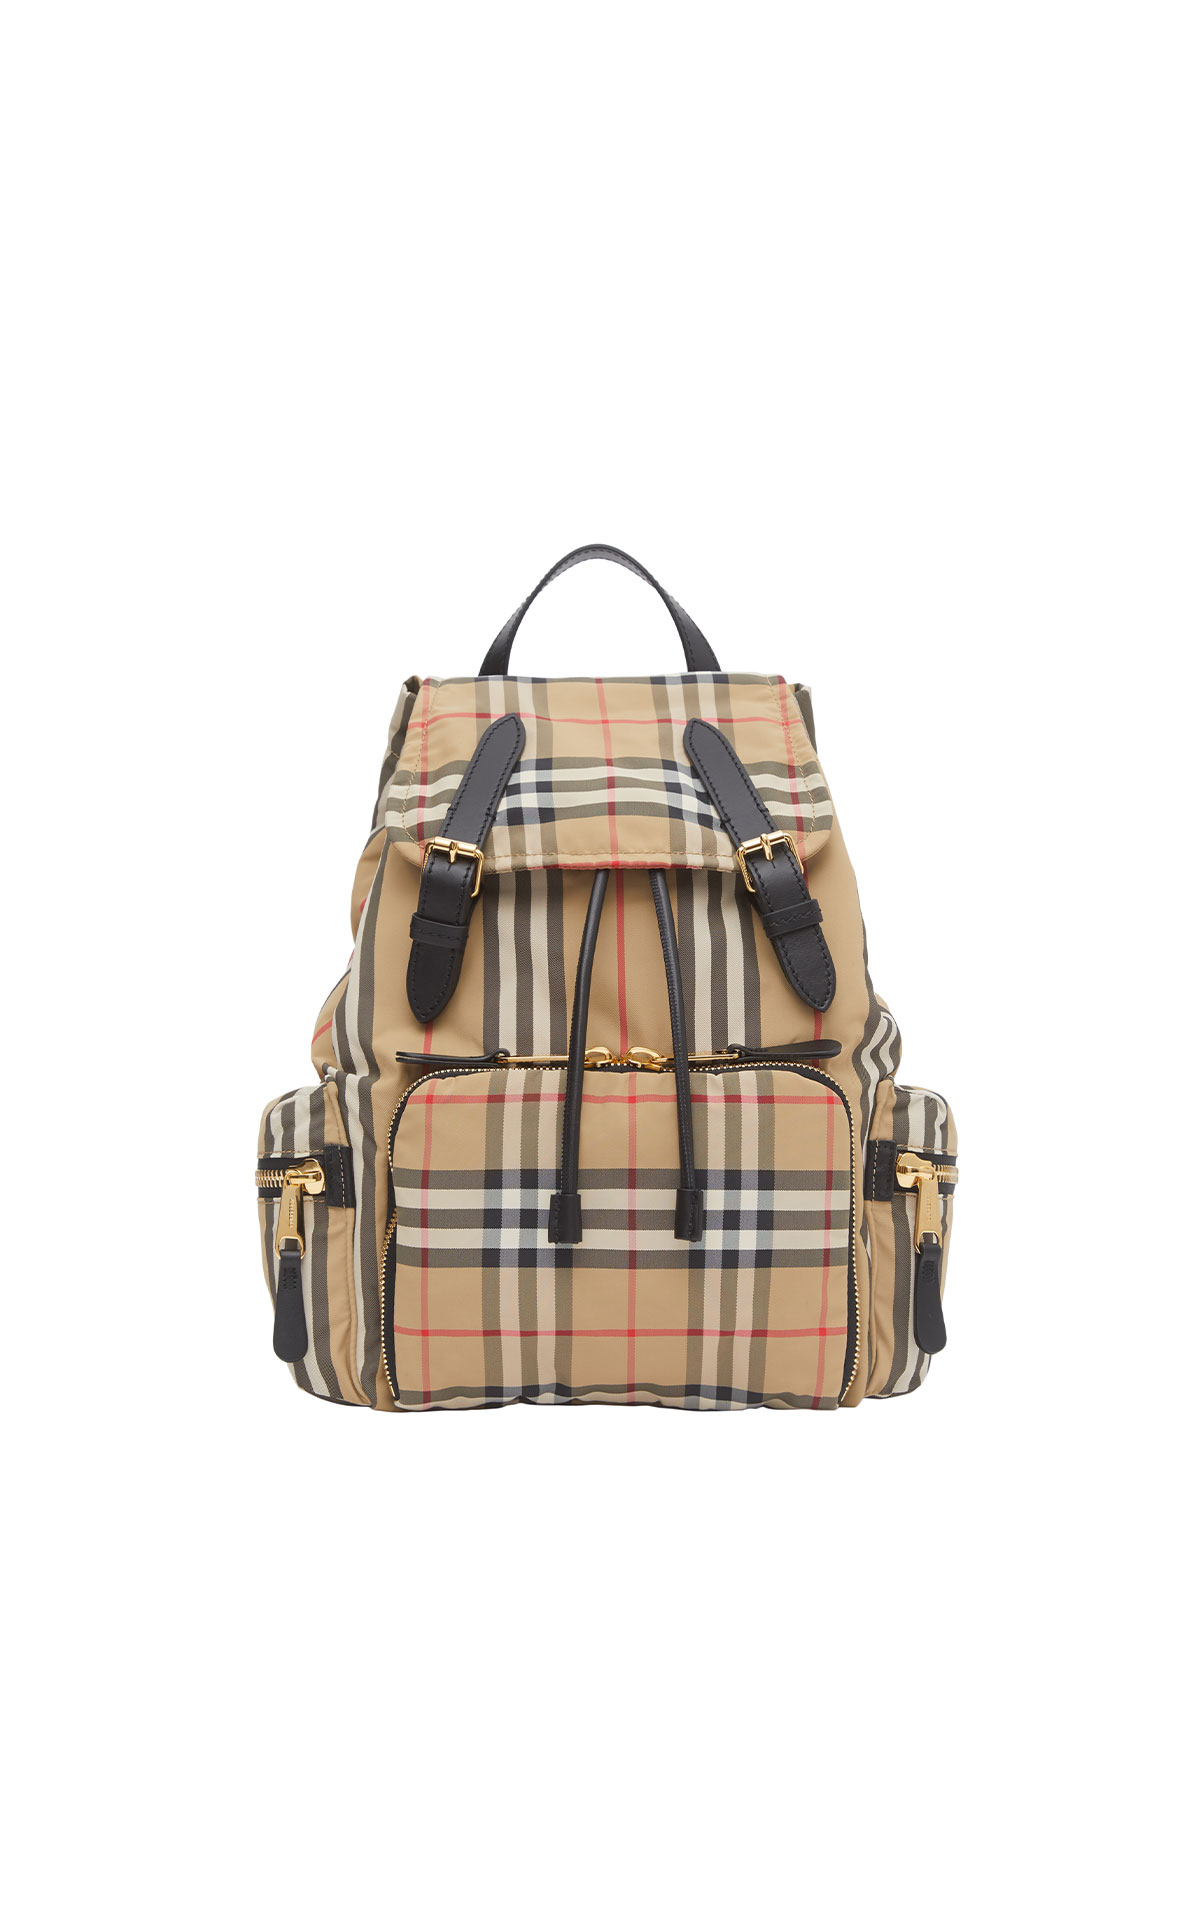 Burberry Women's MD rucksack from Bicester Village